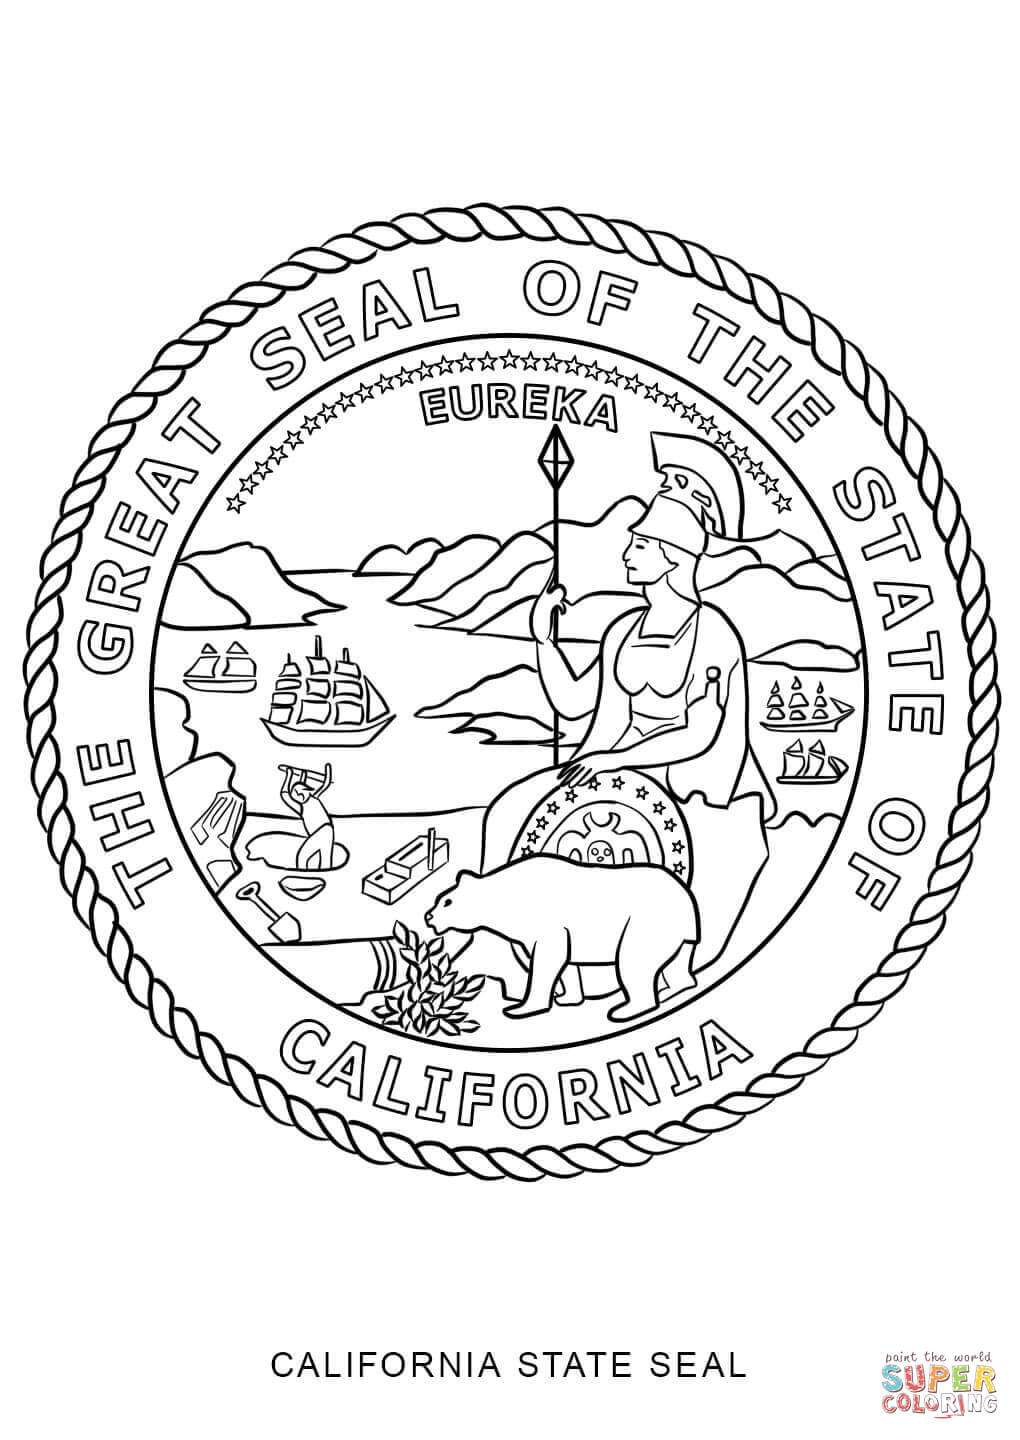 California state seal coloring page az coloring pages for Arizona state seal coloring page